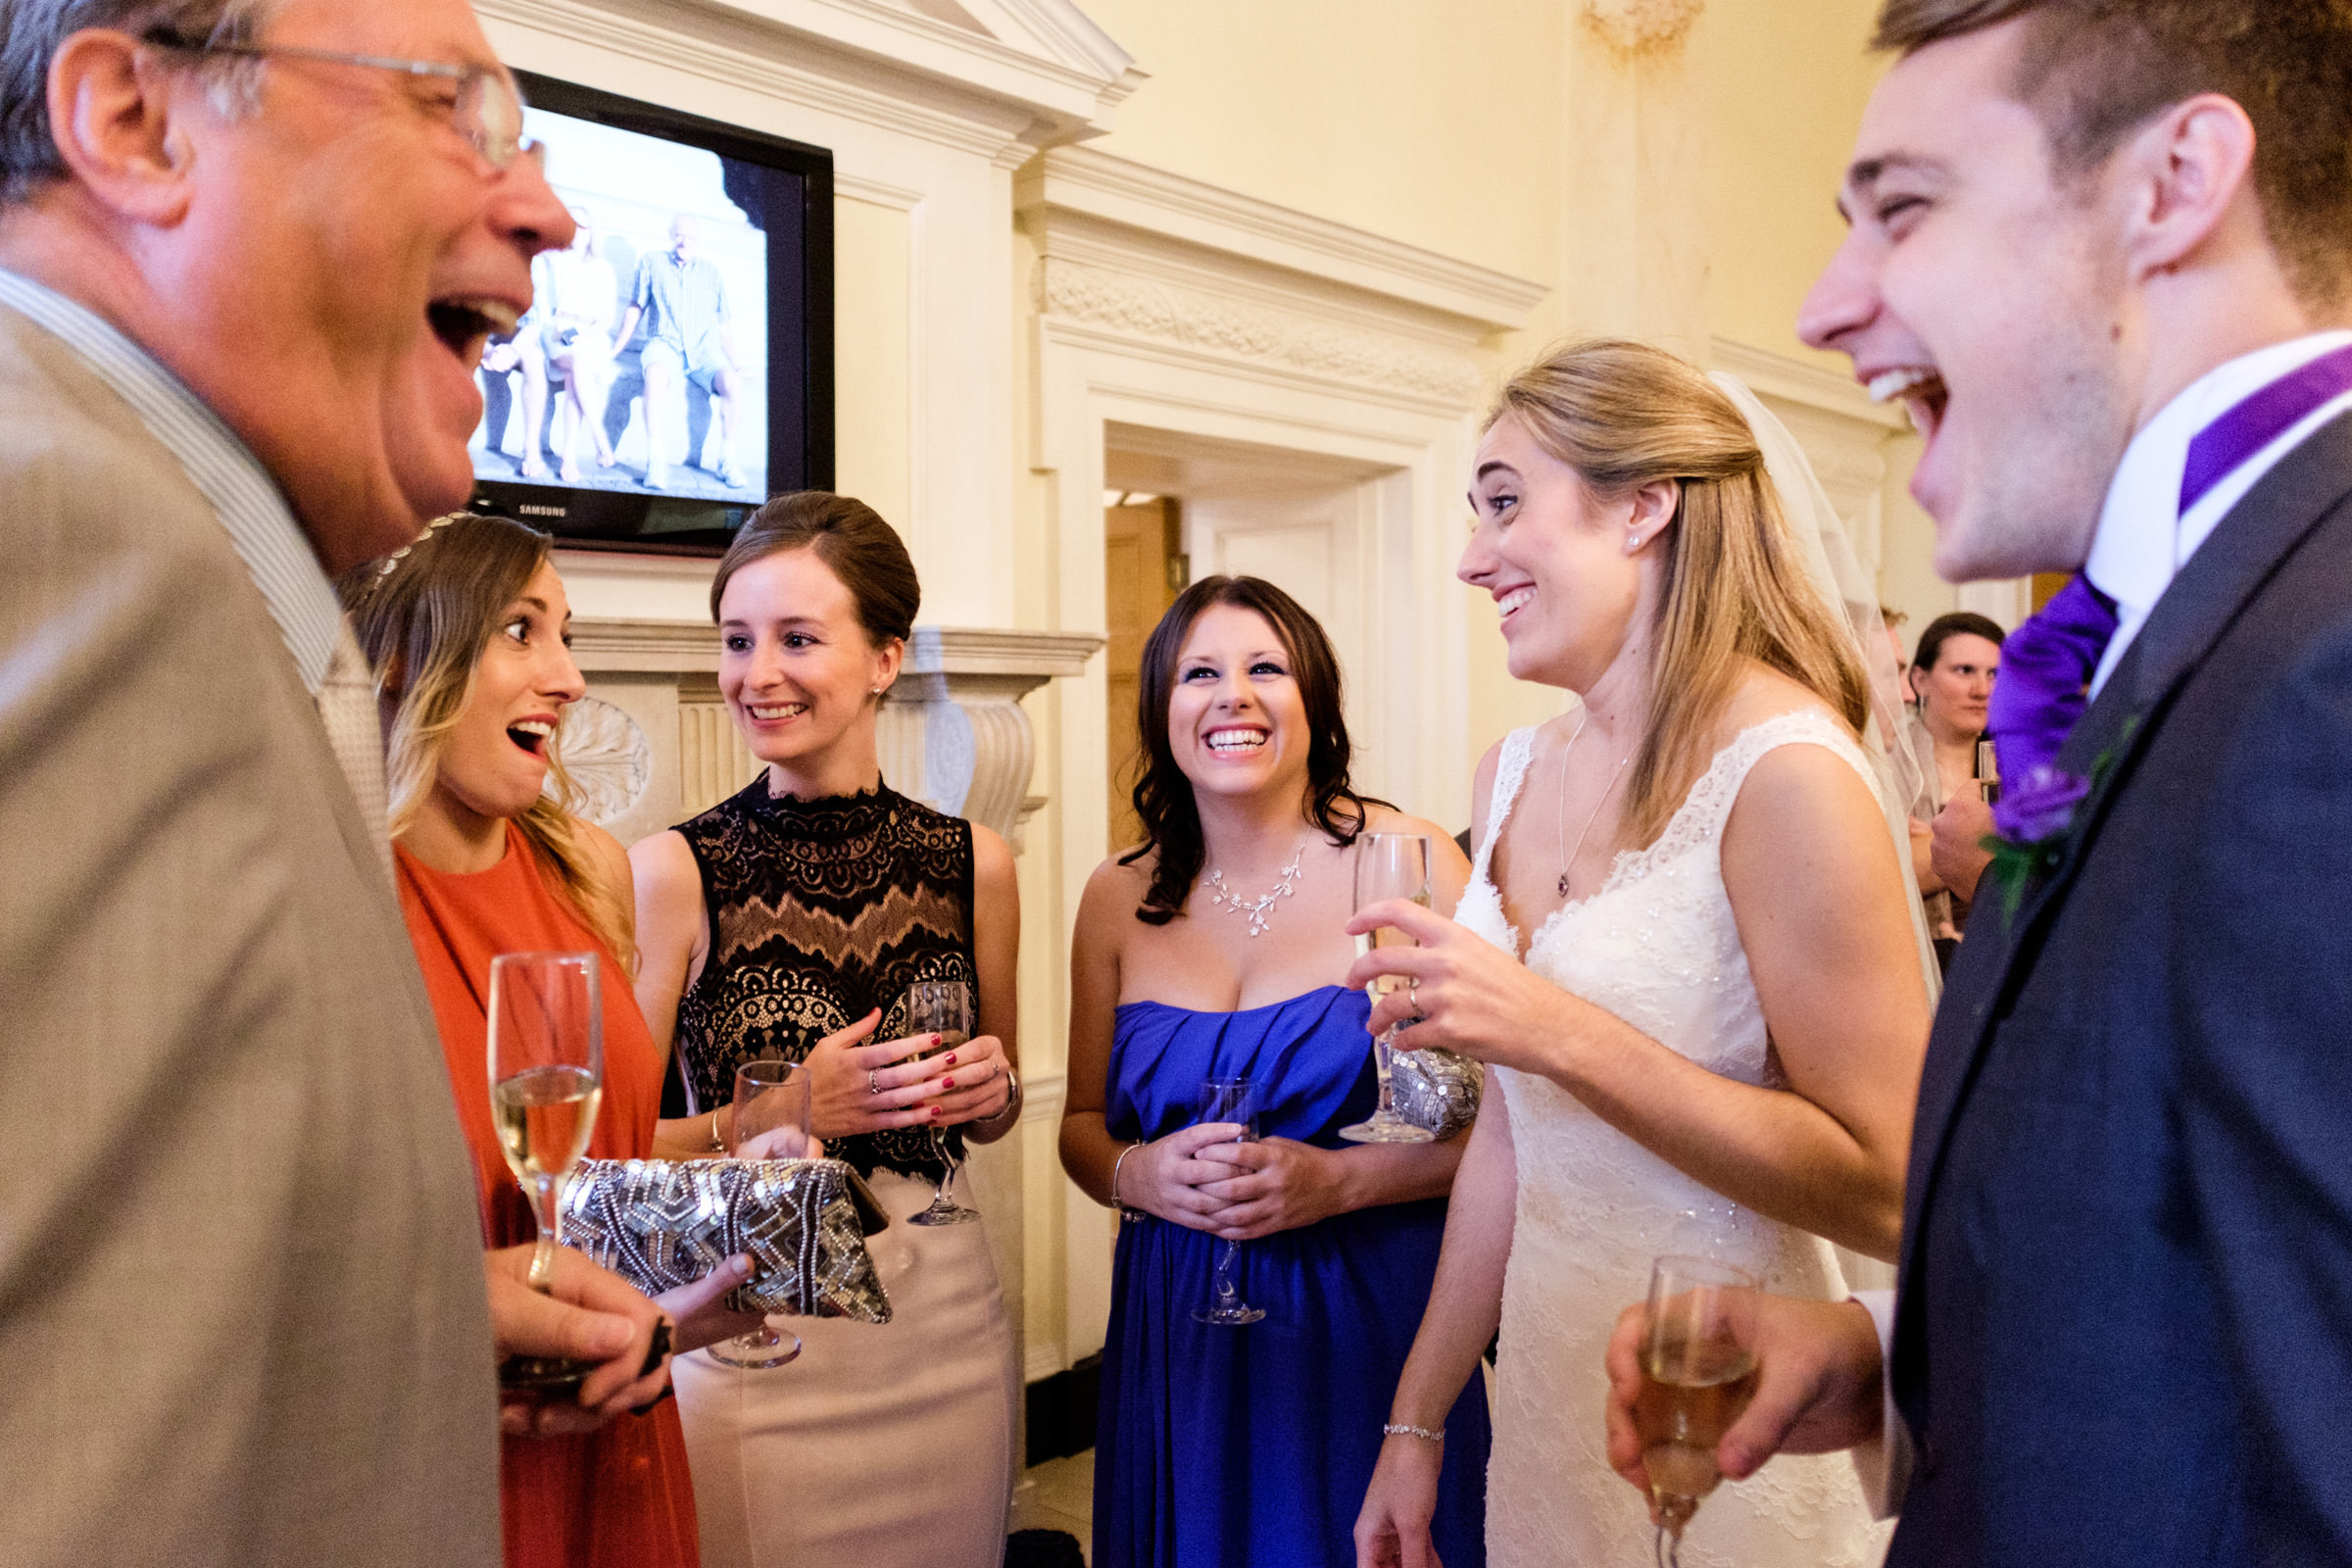 Francesca+and+Keith's+Wedding+at+Botleys+Mansion+in+Chertsey+013.jpg